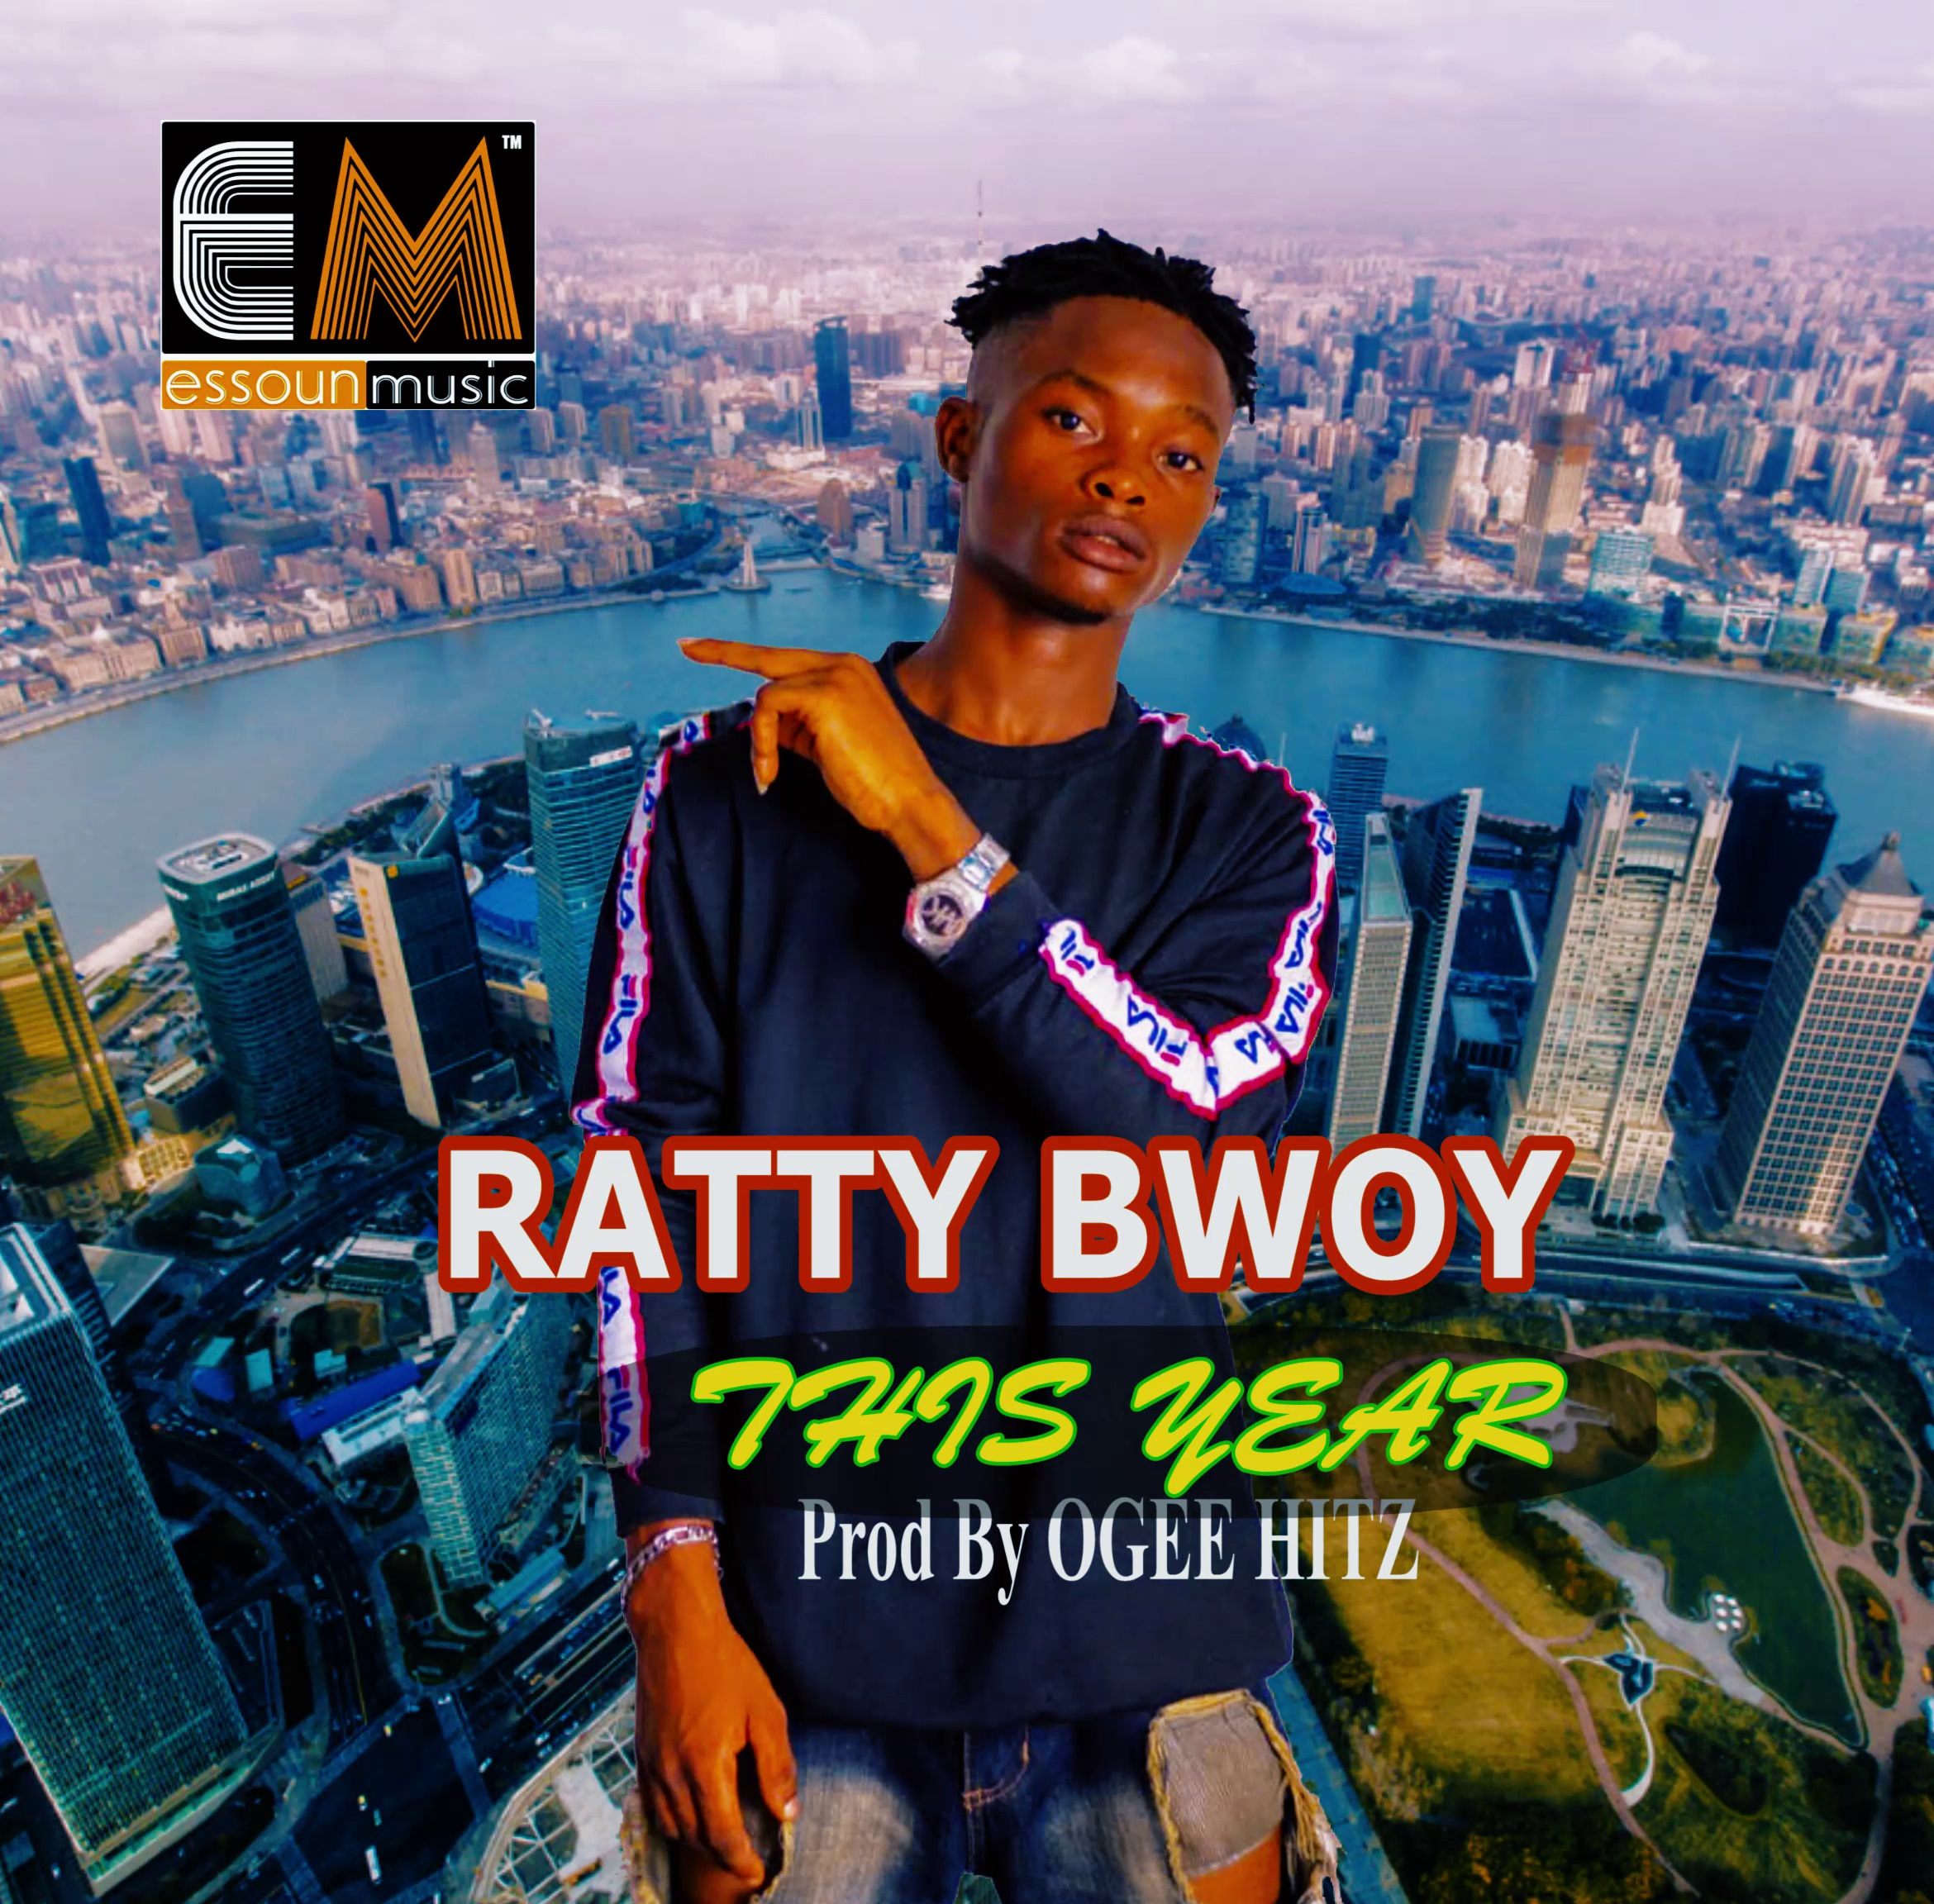 Ratty Bwoy - This Year (Prod By Ogee Hitz)